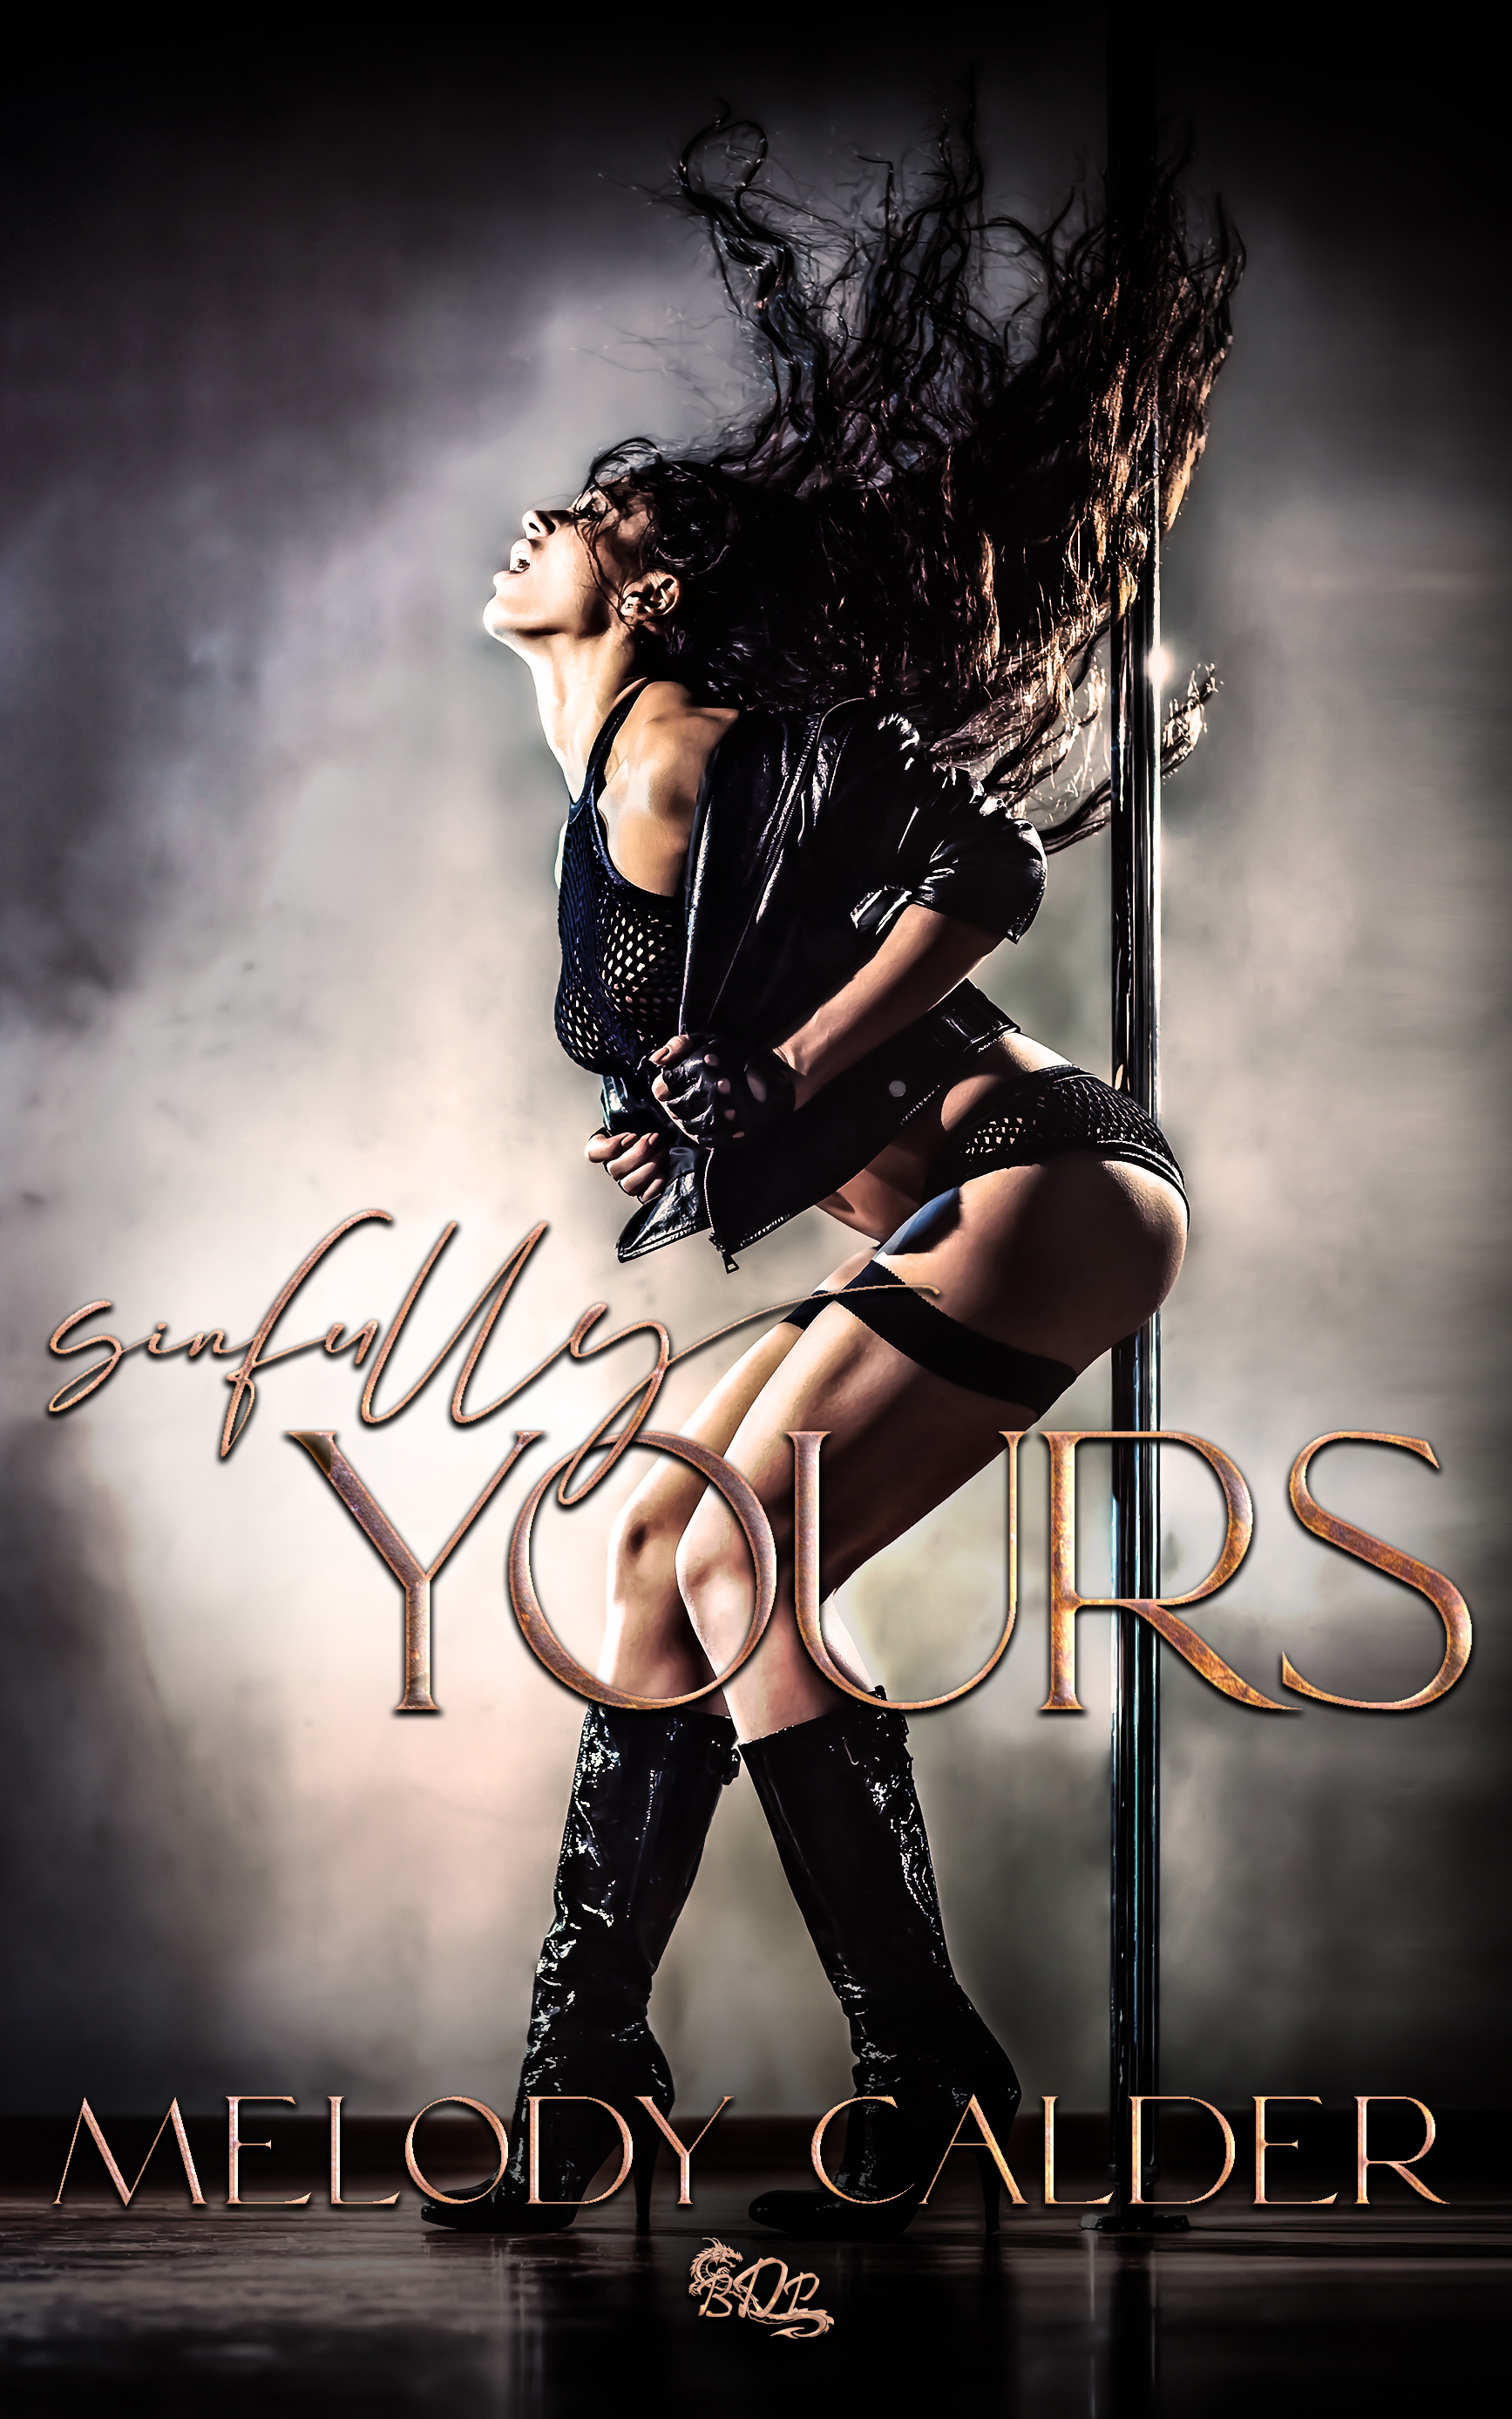 Sinfully Yours, Melody Calder, Butterdragons